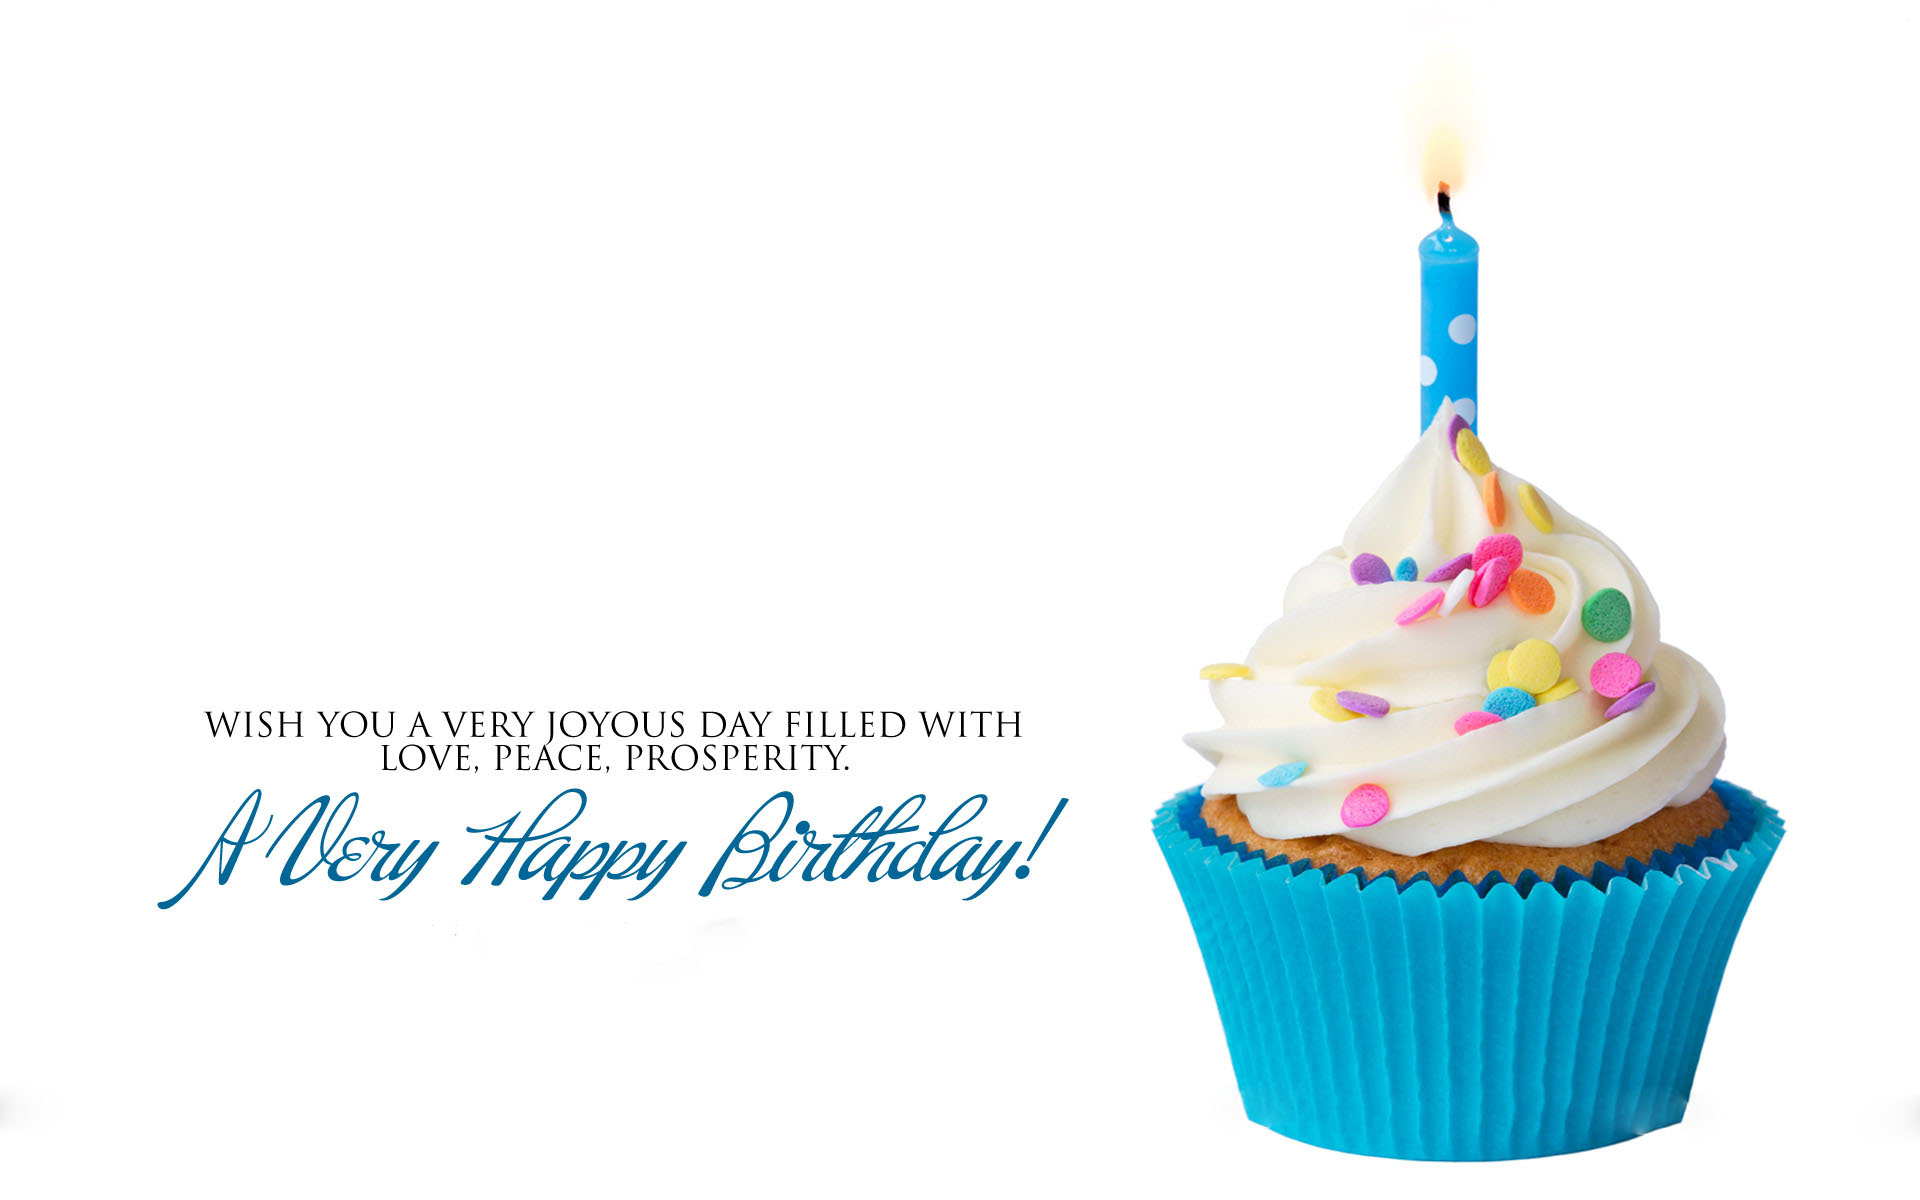 birthday wishes high quality images ; happy-birthday-wishes-wallpaper-1